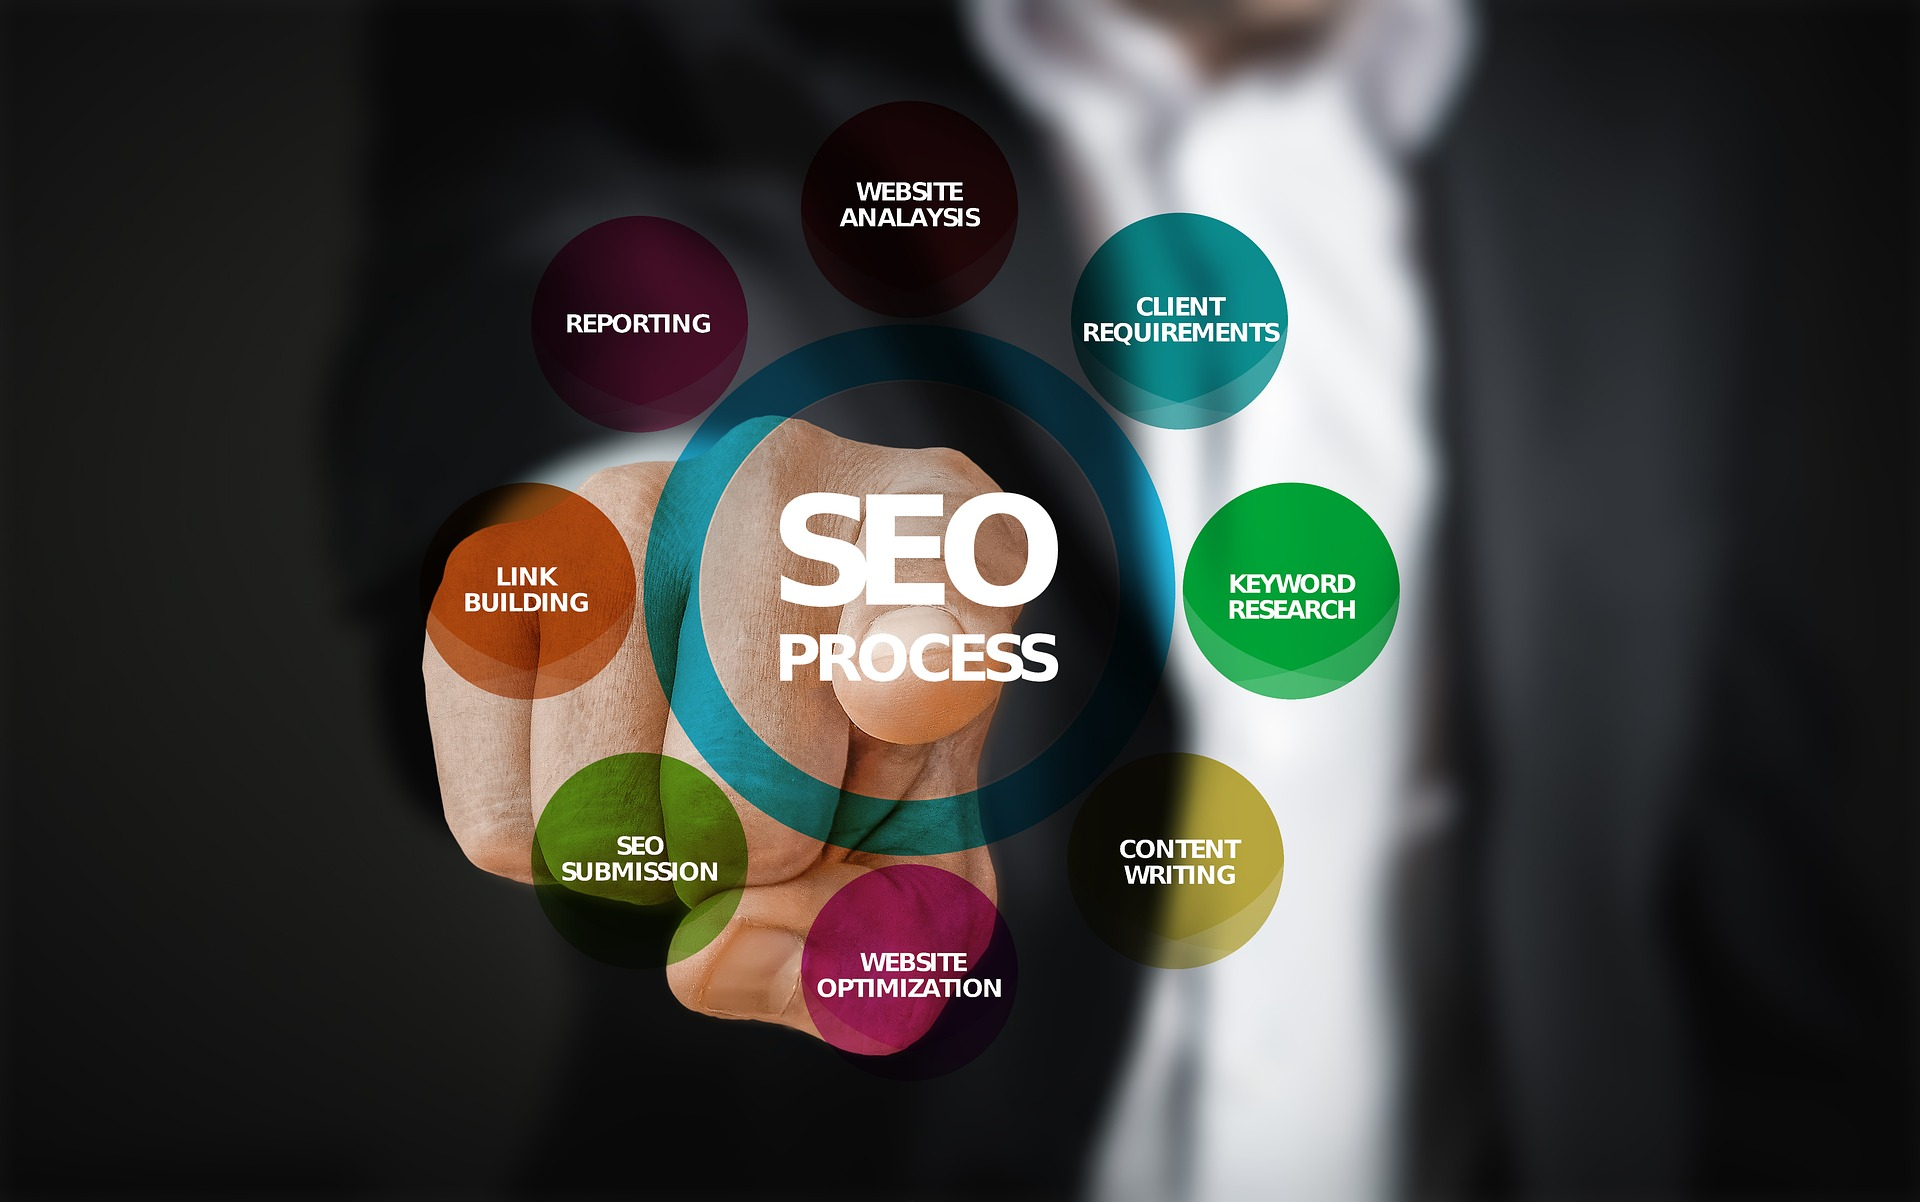 SEO – REFERENCEMENT NATUREL